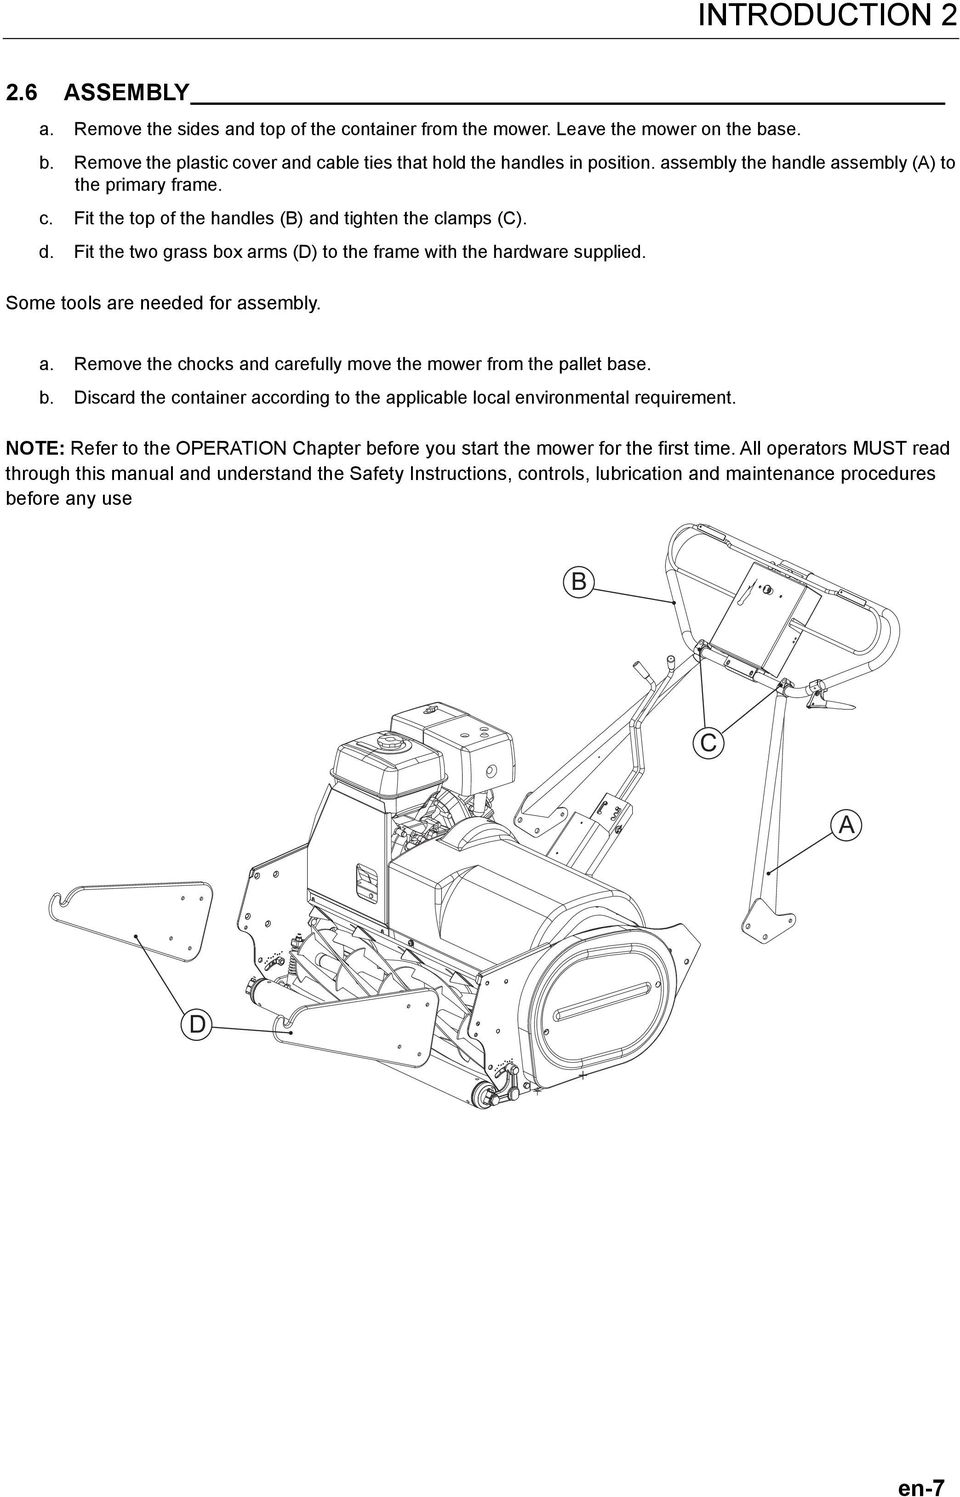 Some tools are needed for assembly. a. Remove the chocks and carefully move the mower from the pallet base. b. Discard the container according to the applicable local environmental requirement.